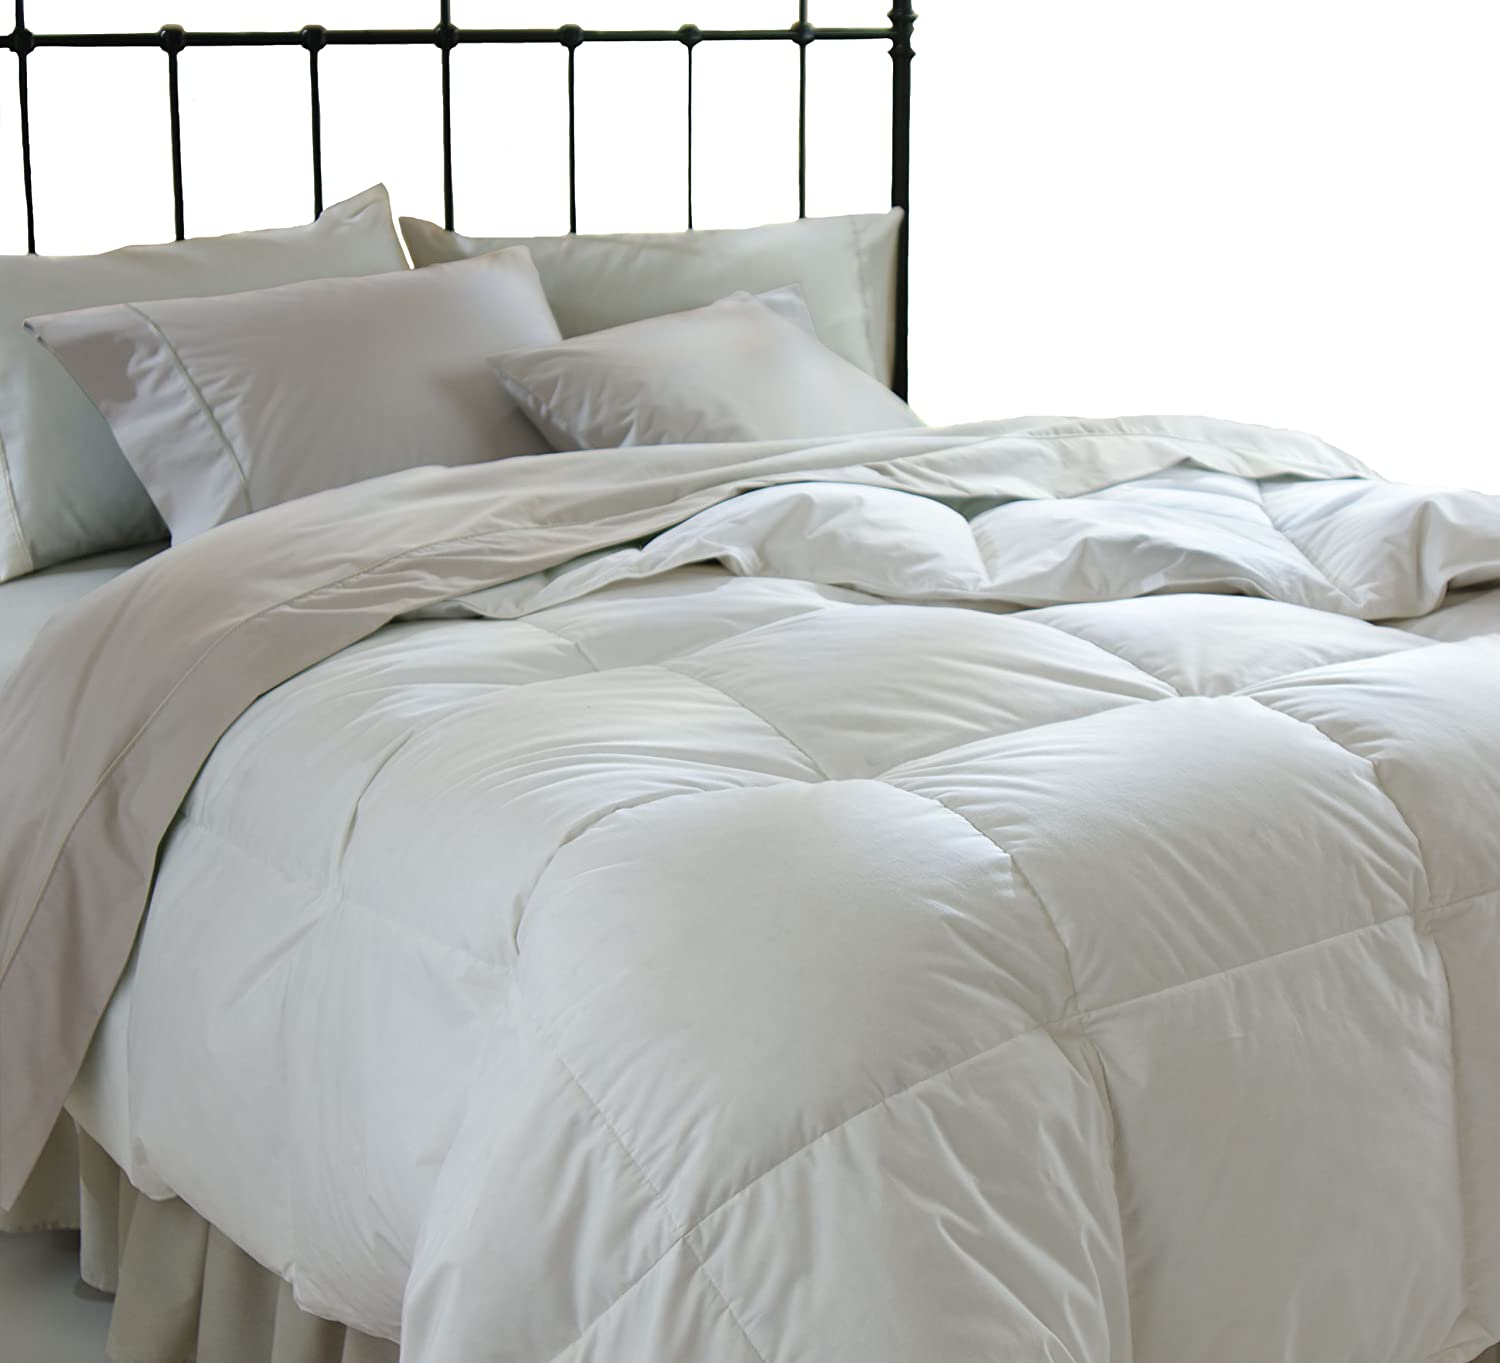 white king bedding sets gF4tRhG6